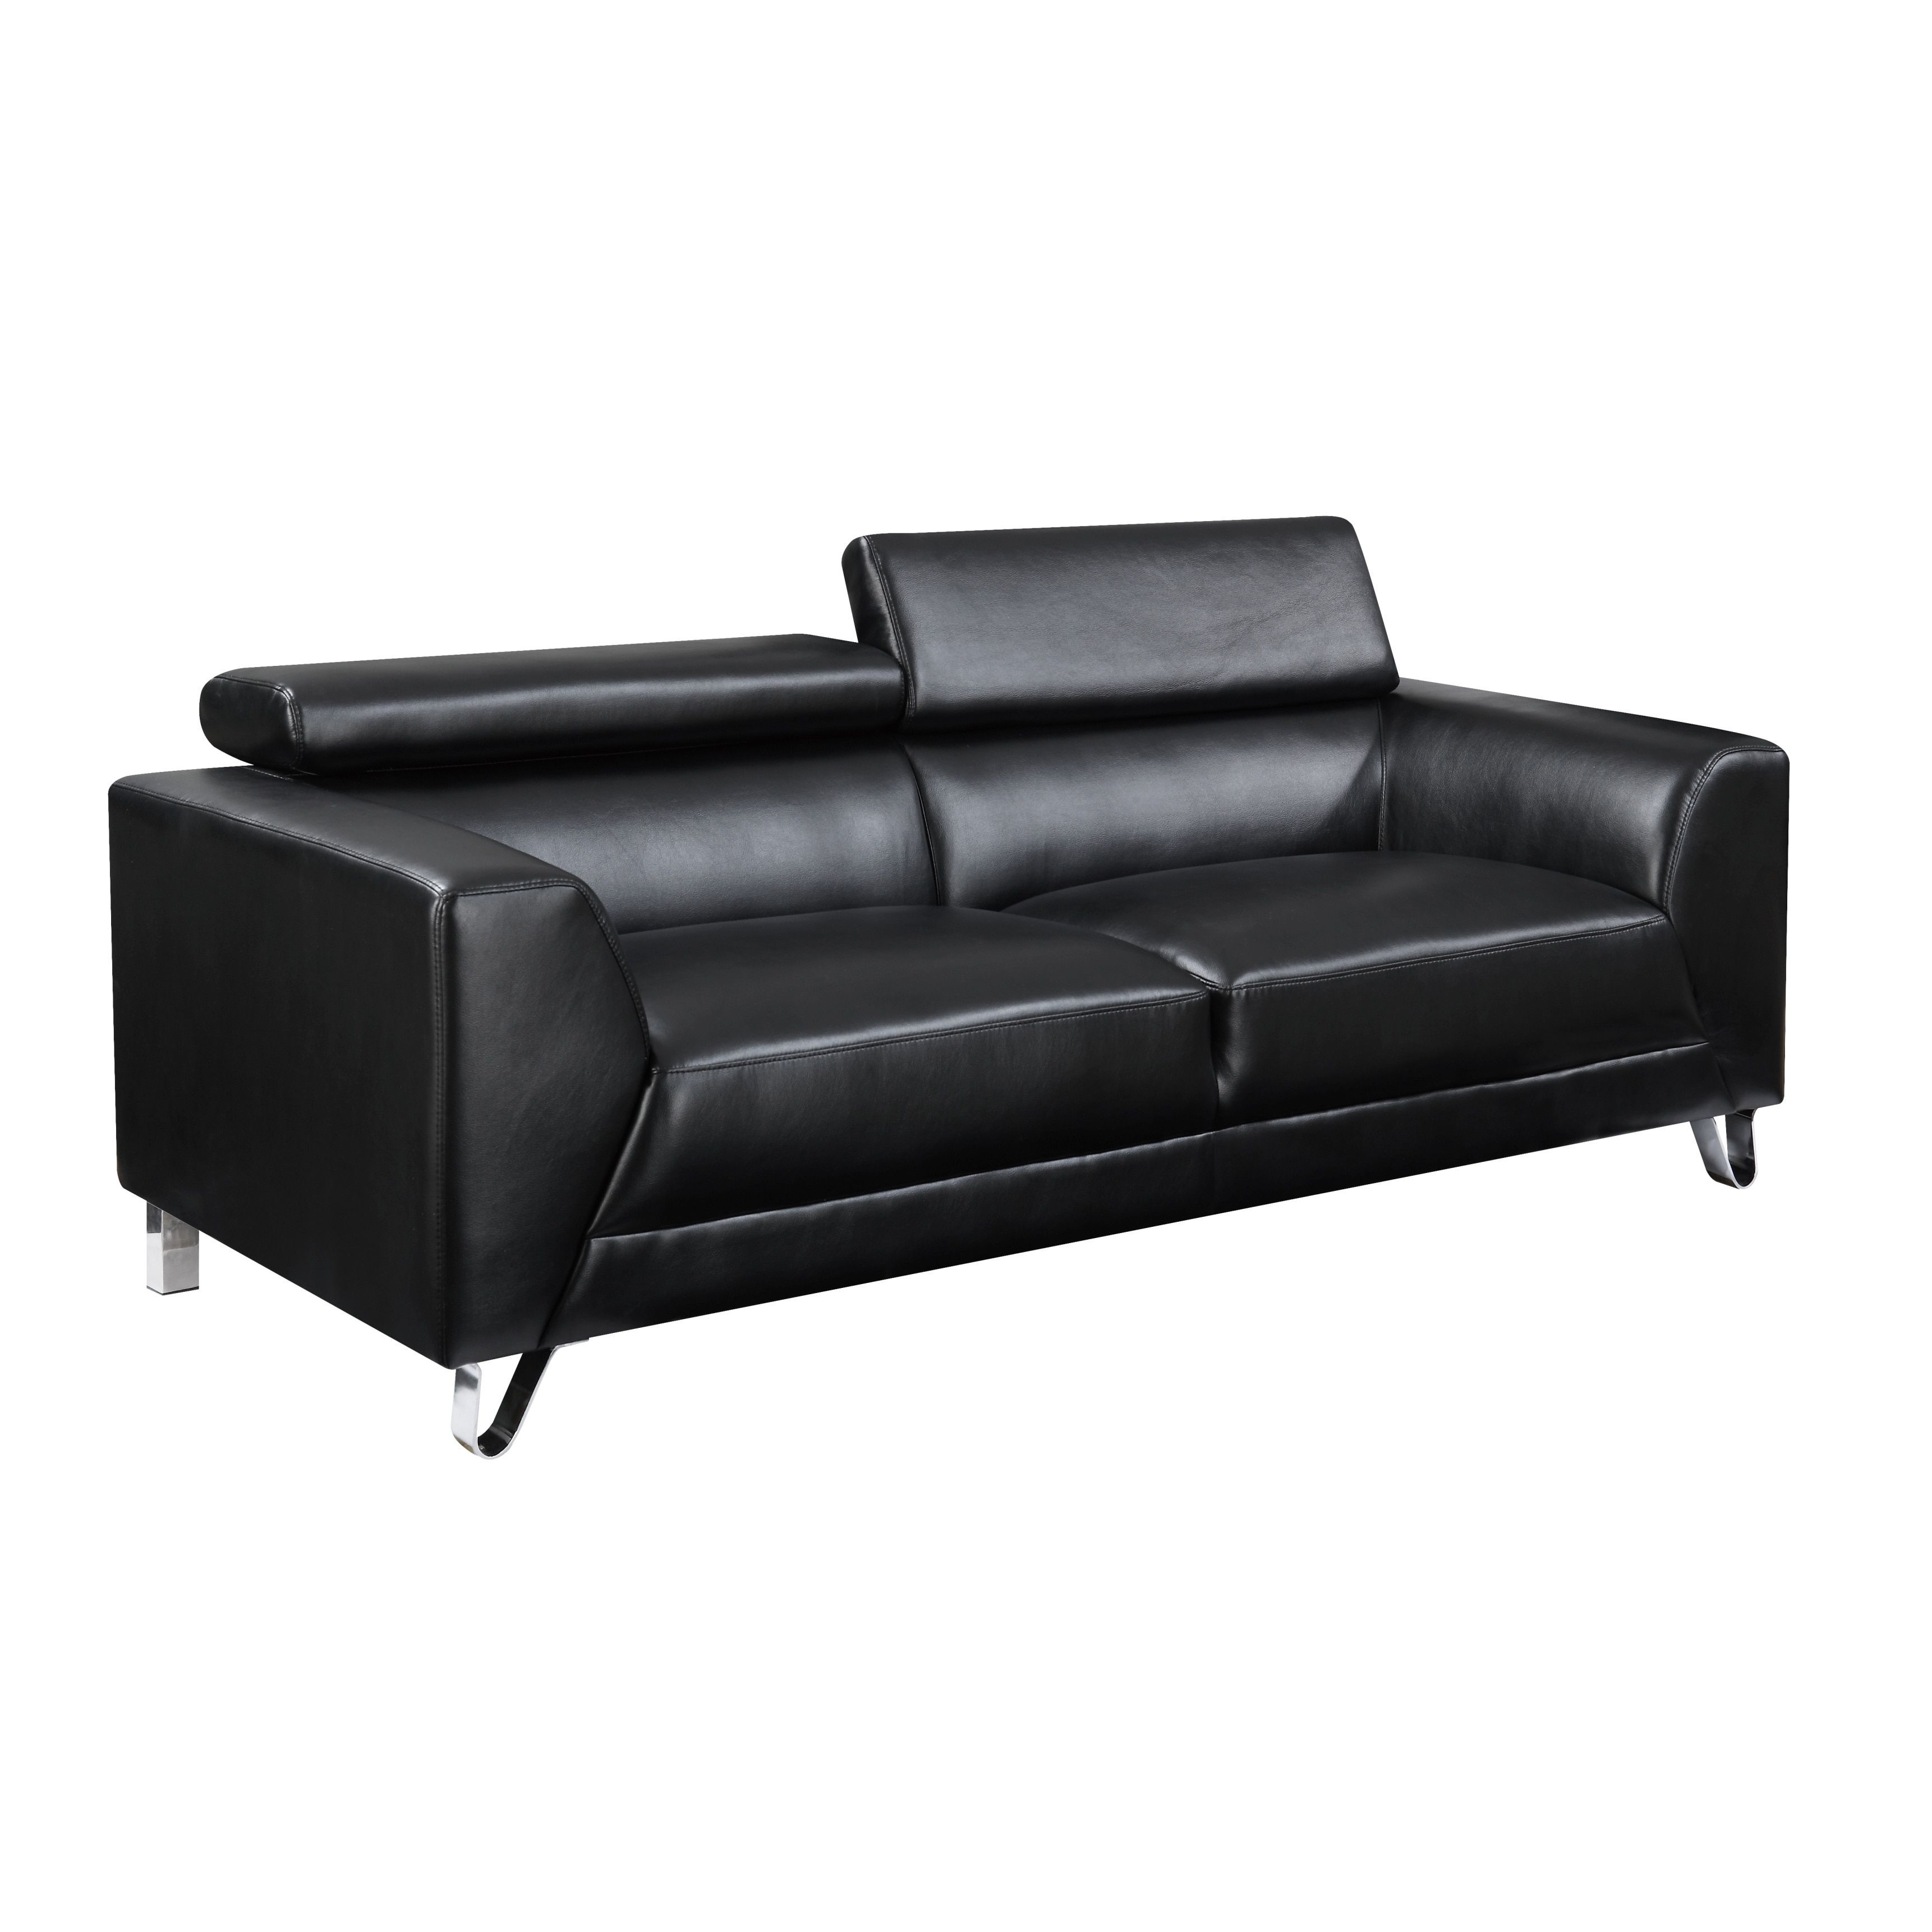 Designer sofa outlet wunderbar sofa designer sofas outlet for Sofa designer outlet